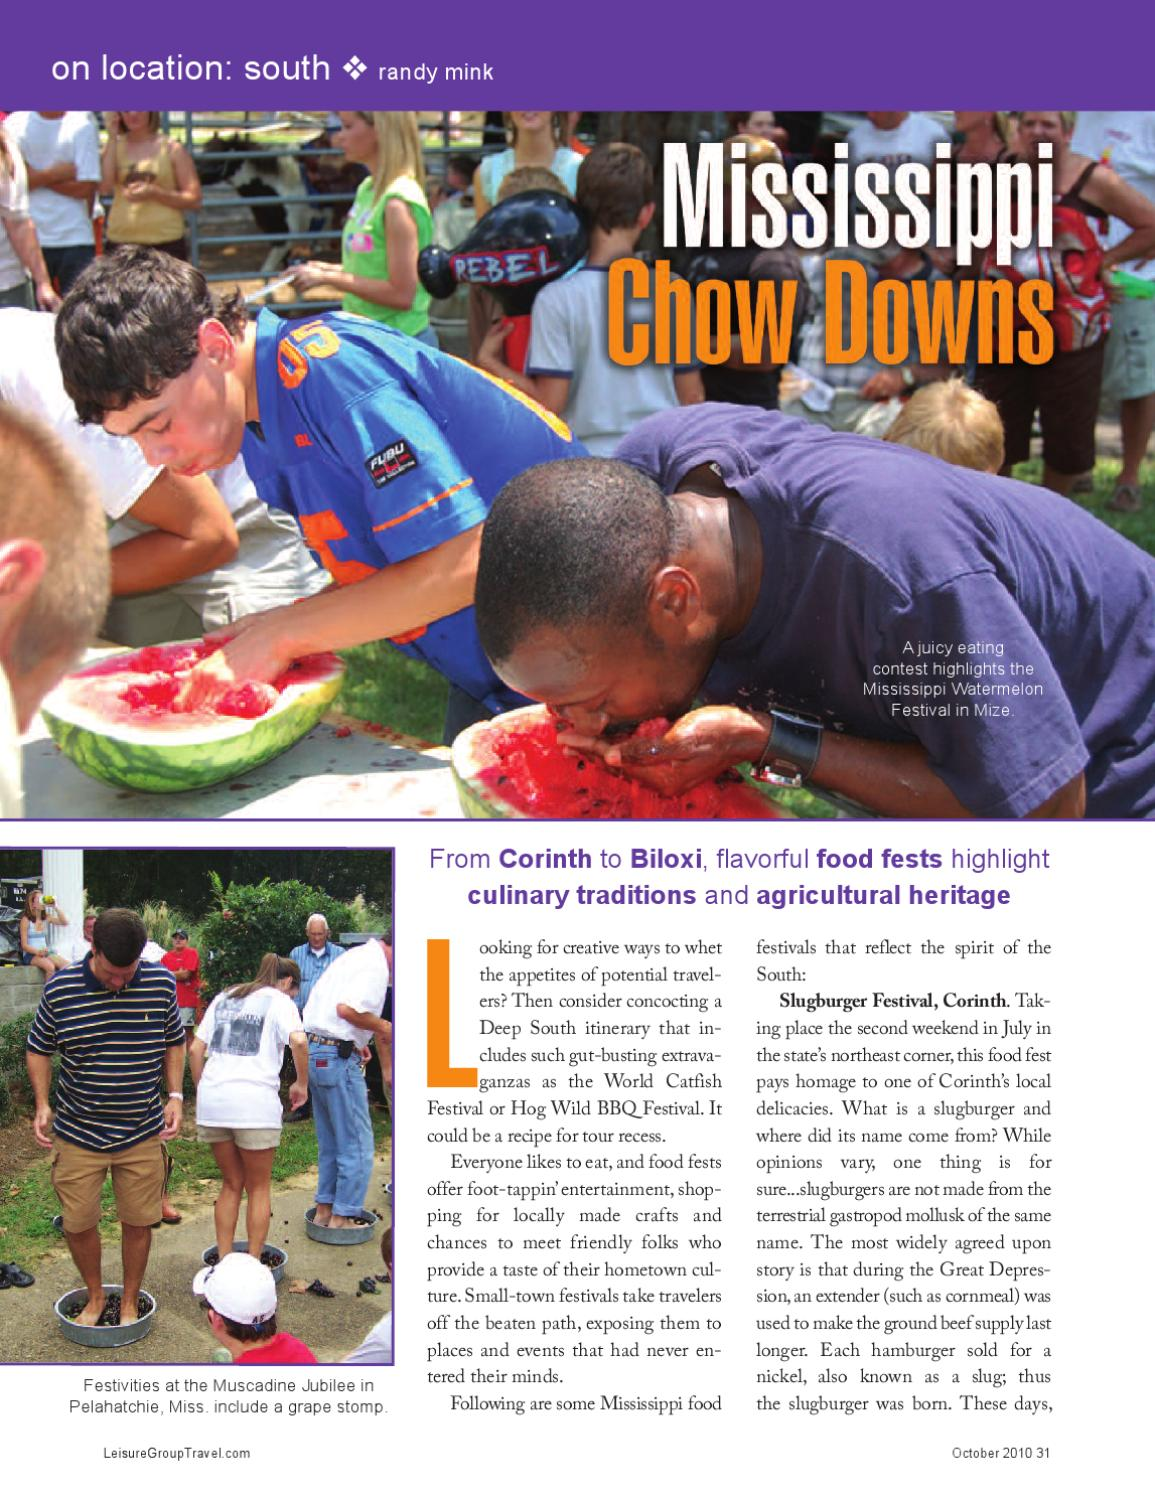 Mississippi group travel ideas by Premier Travel Media - issuu